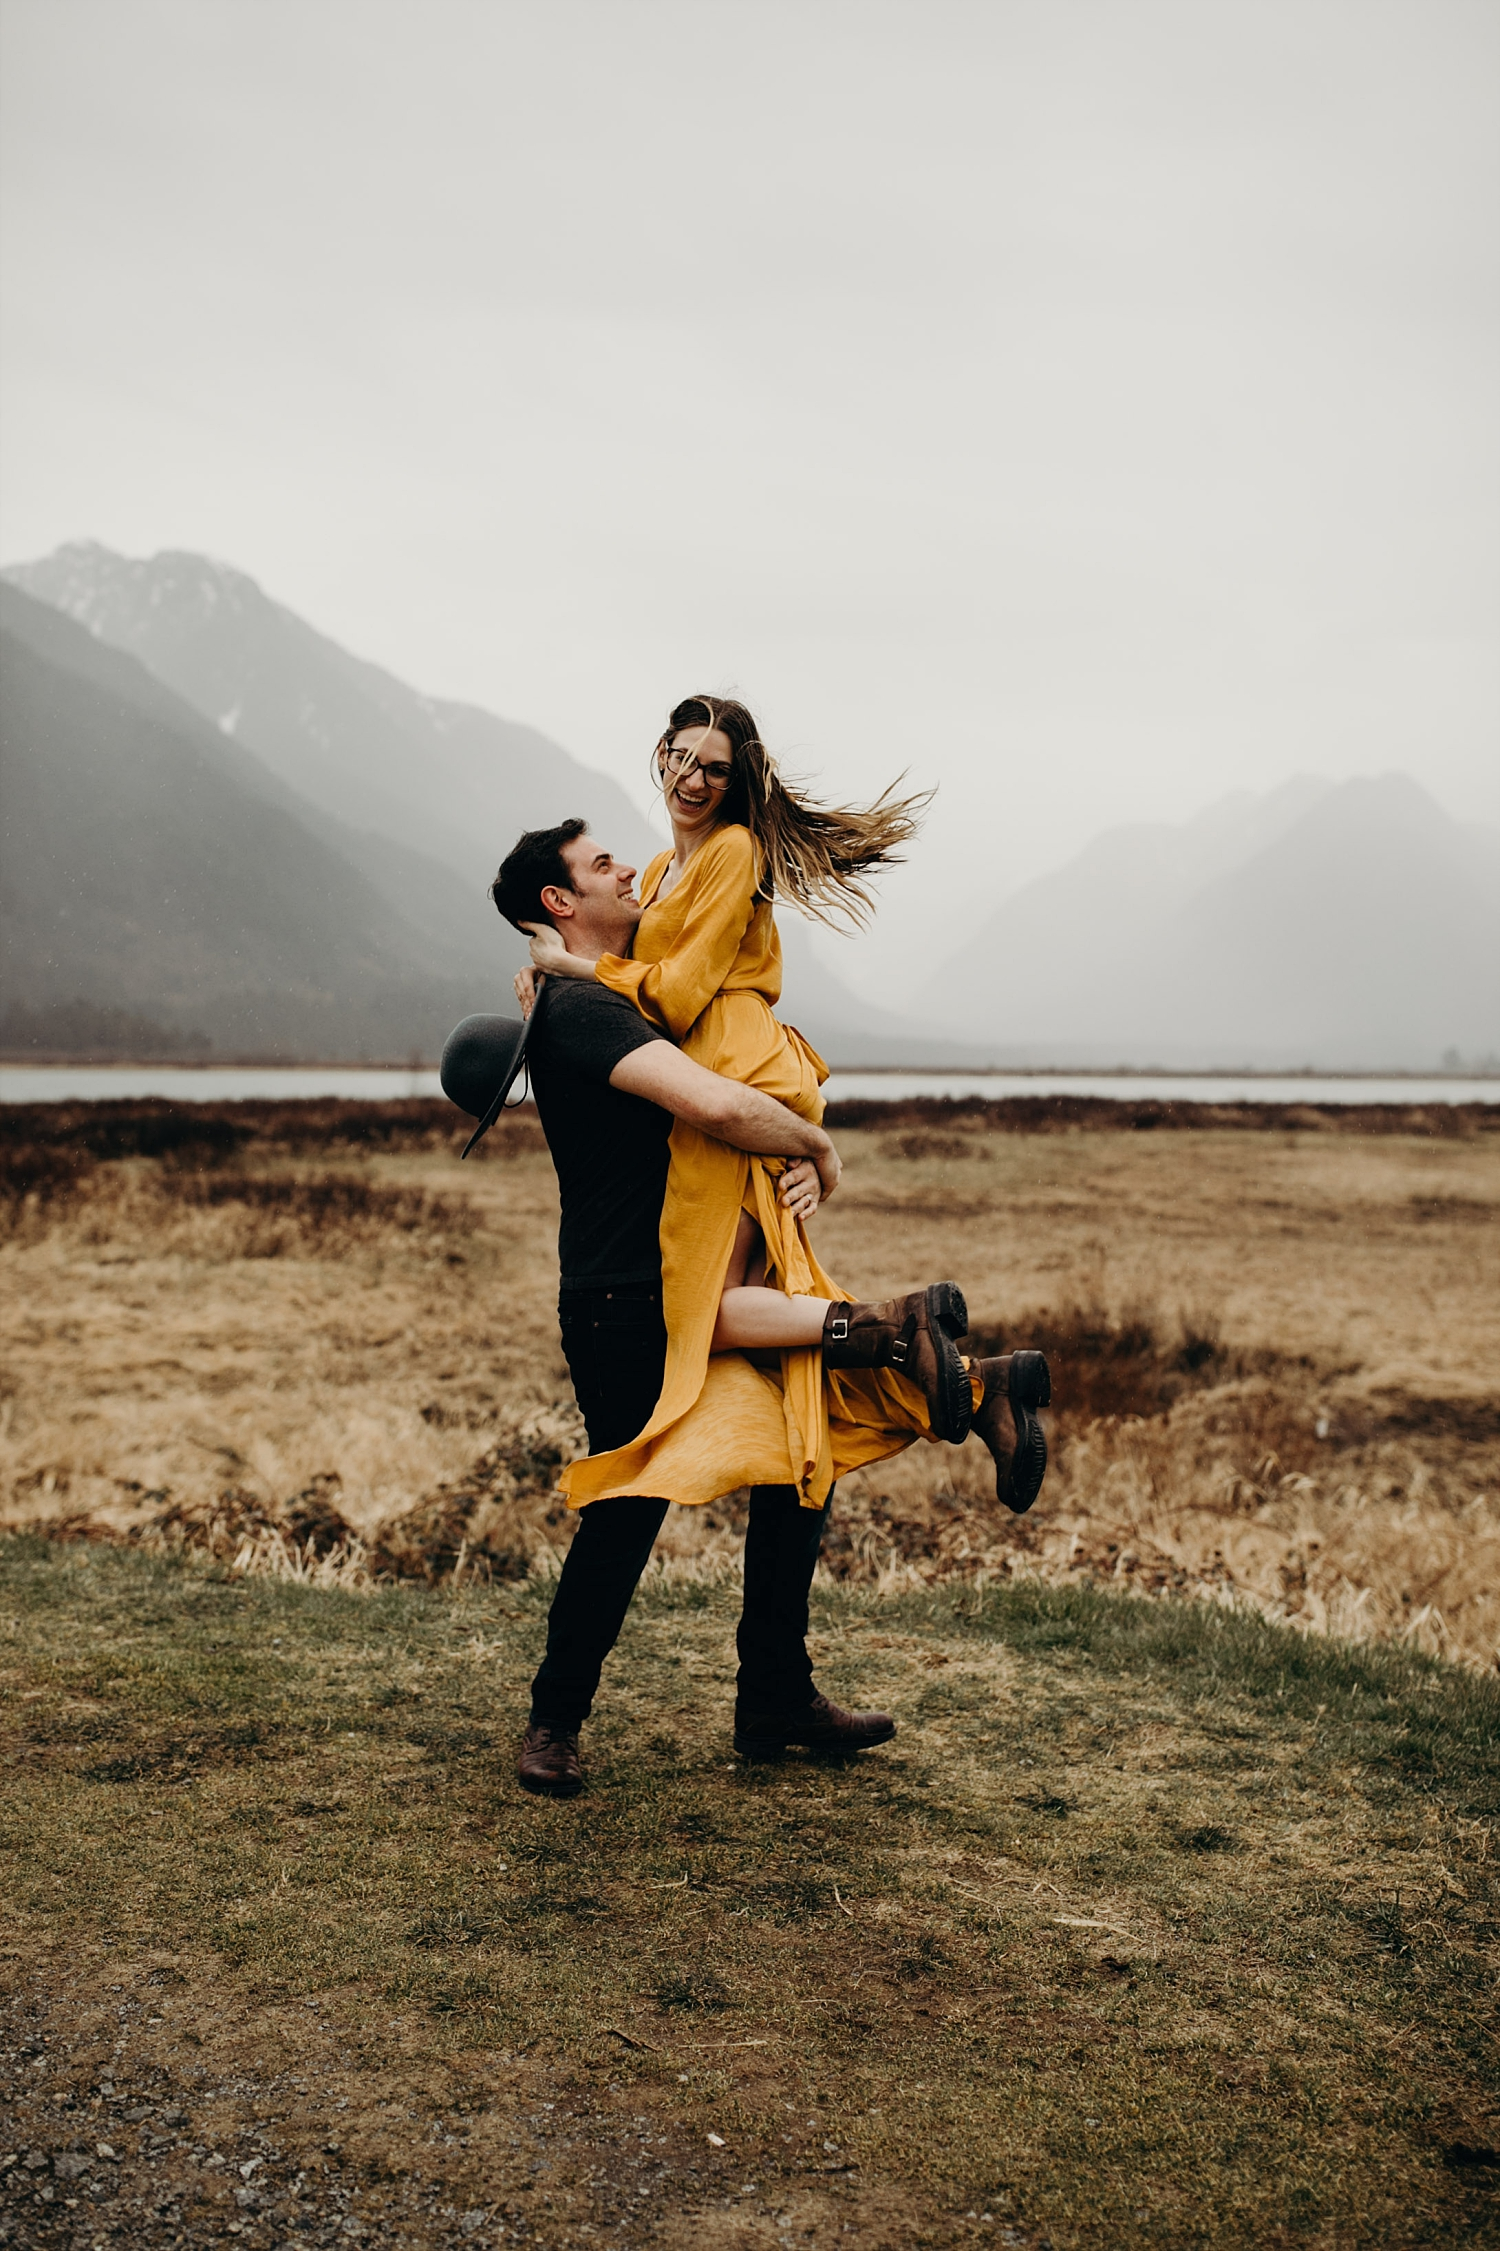 The McLachlans - Vancouver Wedding Photographers - Pitt Lake Engagements - Dan and Alleigra_0008.jpg